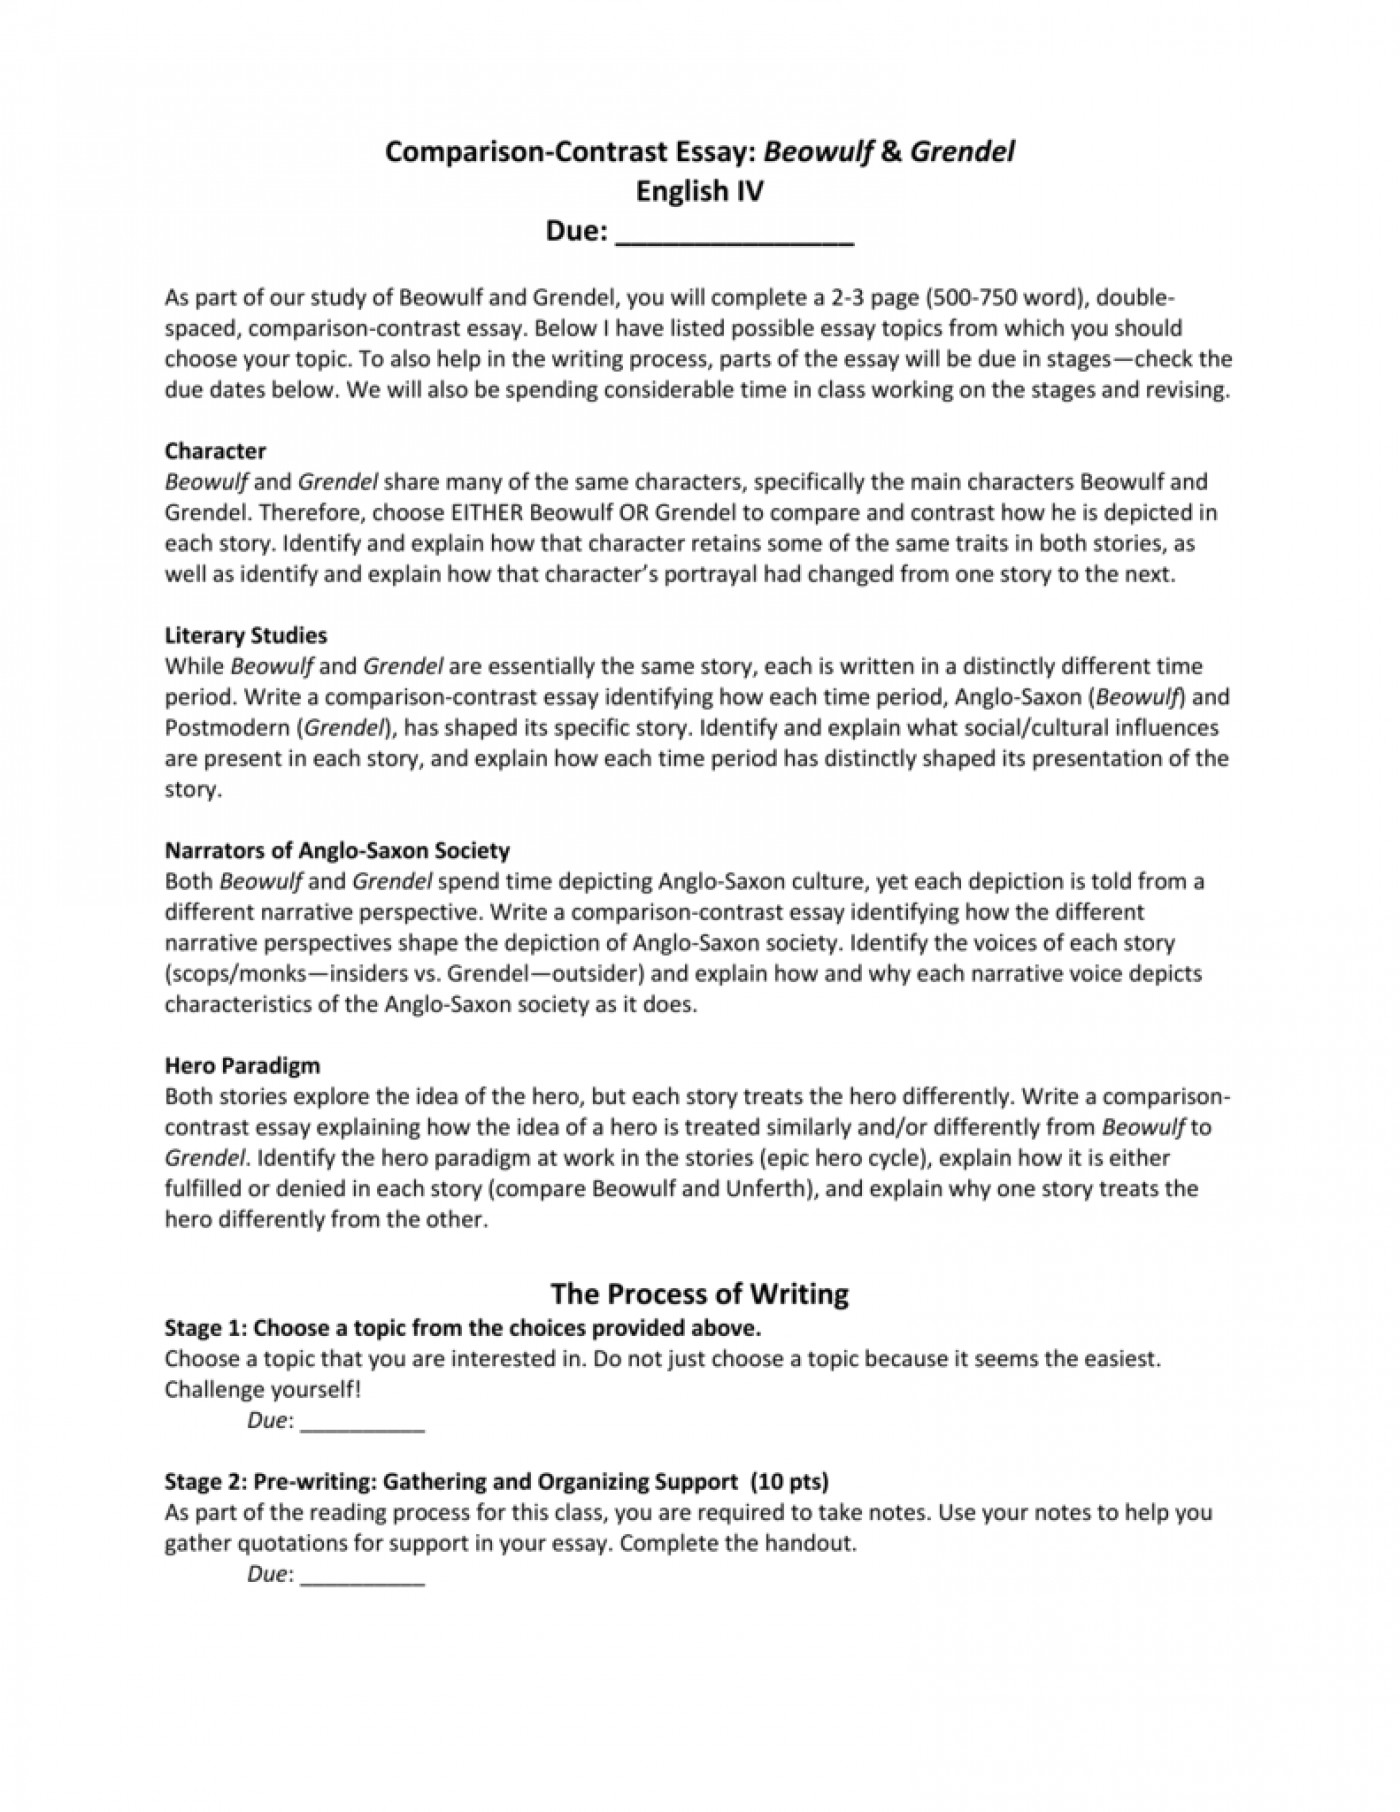 010 Compare And Contrast Essay 008061732 1 Frightening Topics For College Students Rubric 4th Grade Ideas 7th 1400